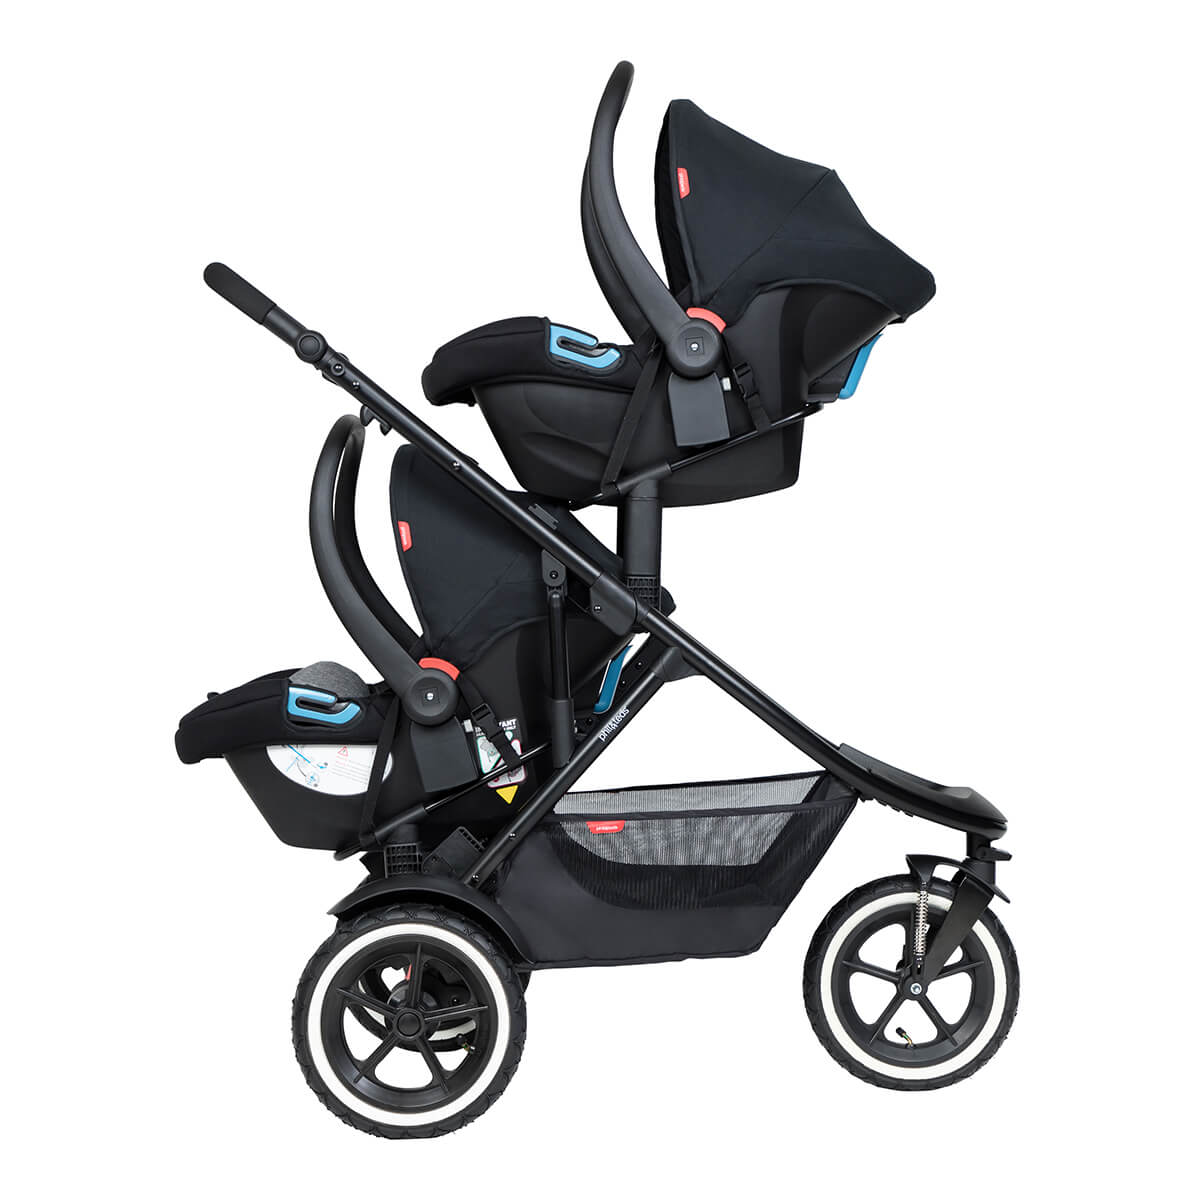 https://cdn.accentuate.io/4509906731085/19466204610754/philteds-sport-buggy-with-double-alpha-travel-system-v1626485484370.jpg?1200x1200